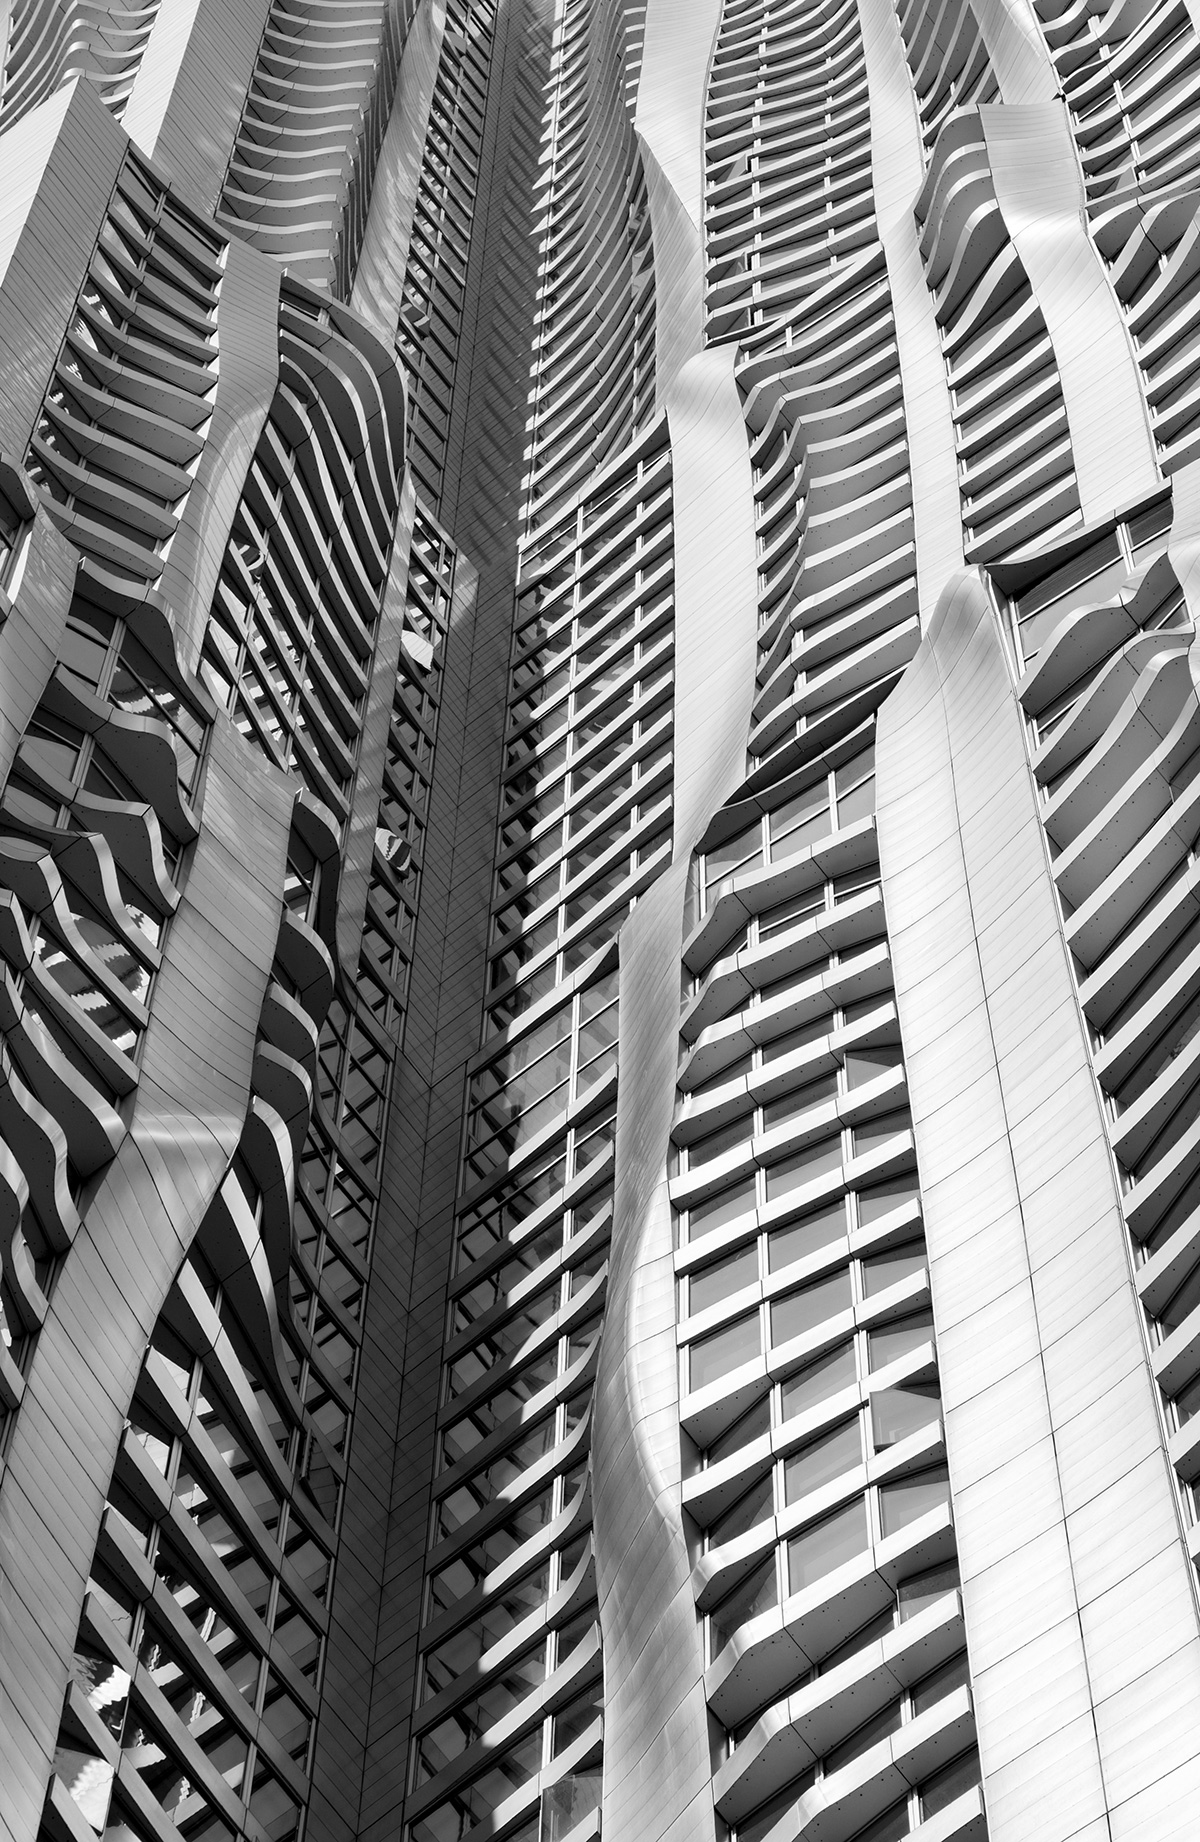 Downtown Manhattan, Architecture, Photography, Frank Gehry, Spruce Street